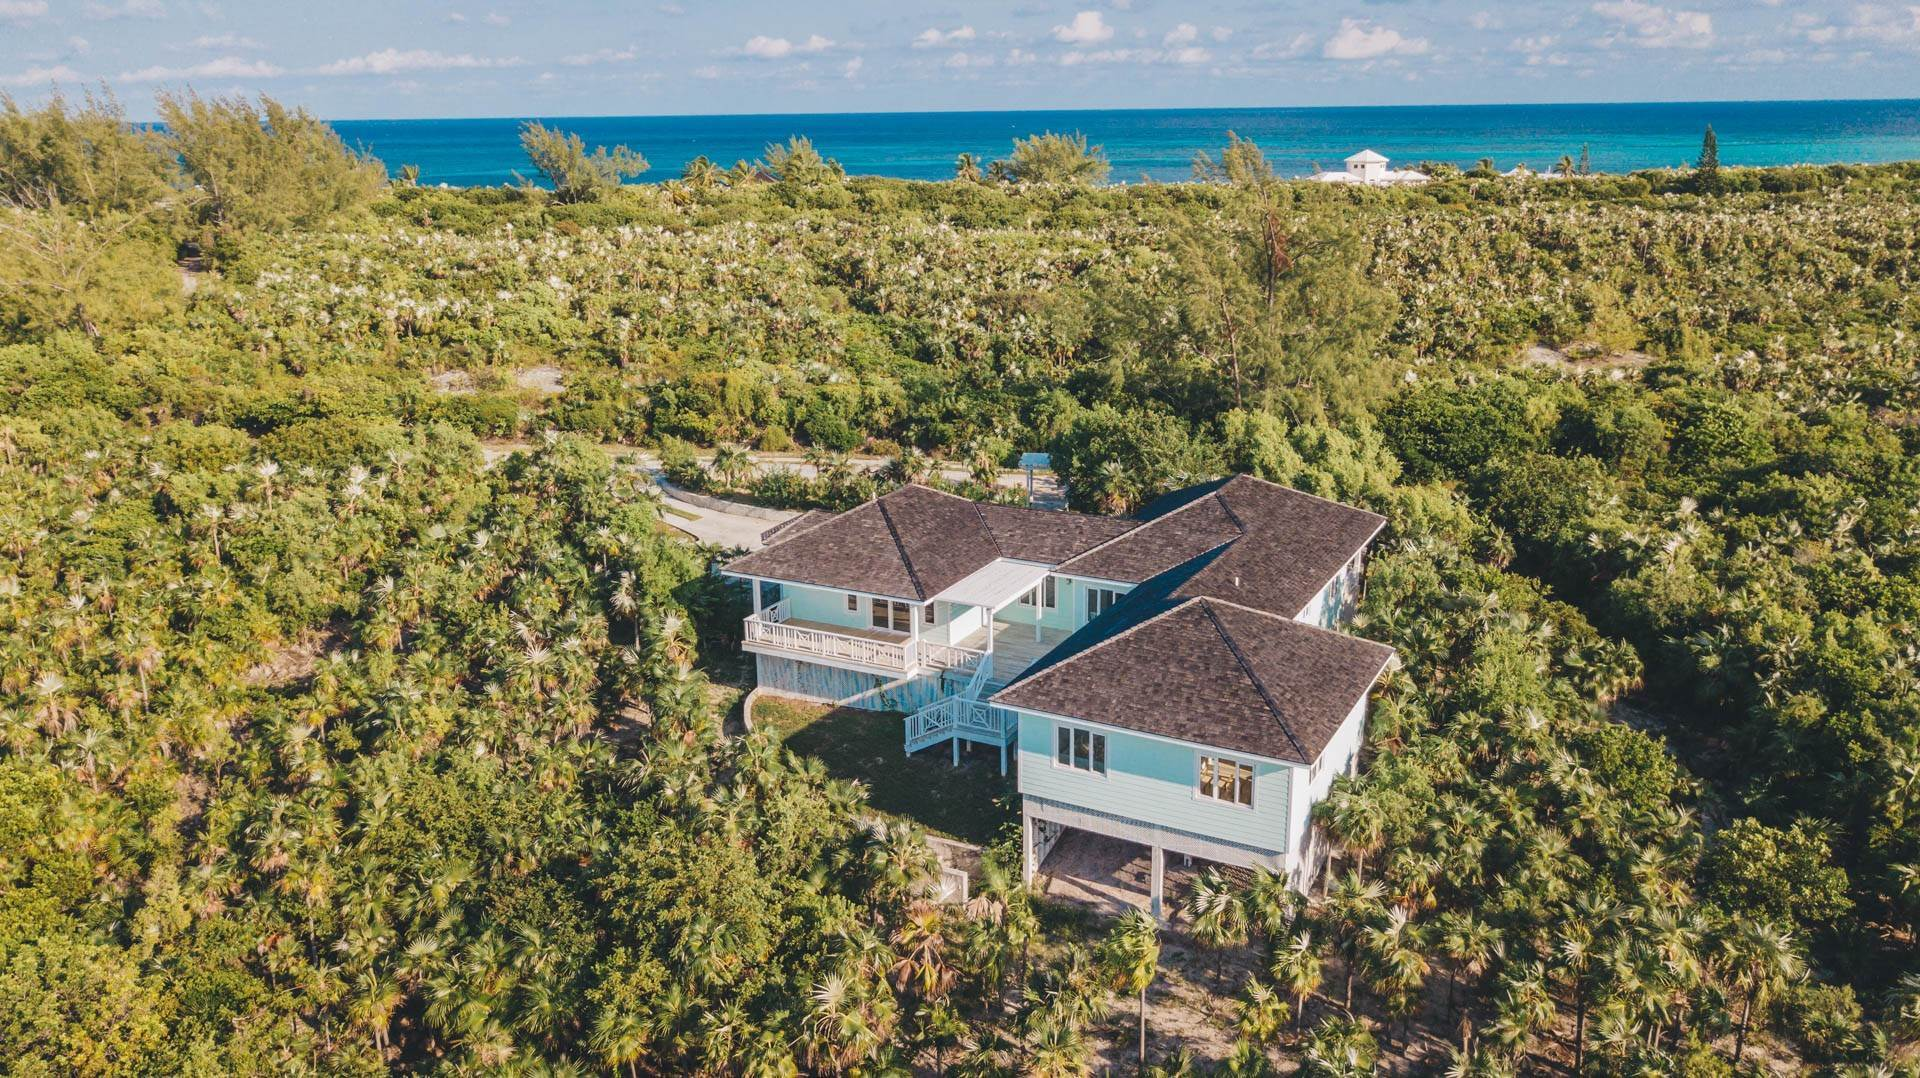 32. Single Family Homes for Sale at Savannah Sound Home - Windermere Island - MLS 44478 Windermere Island, Eleuthera, Bahamas